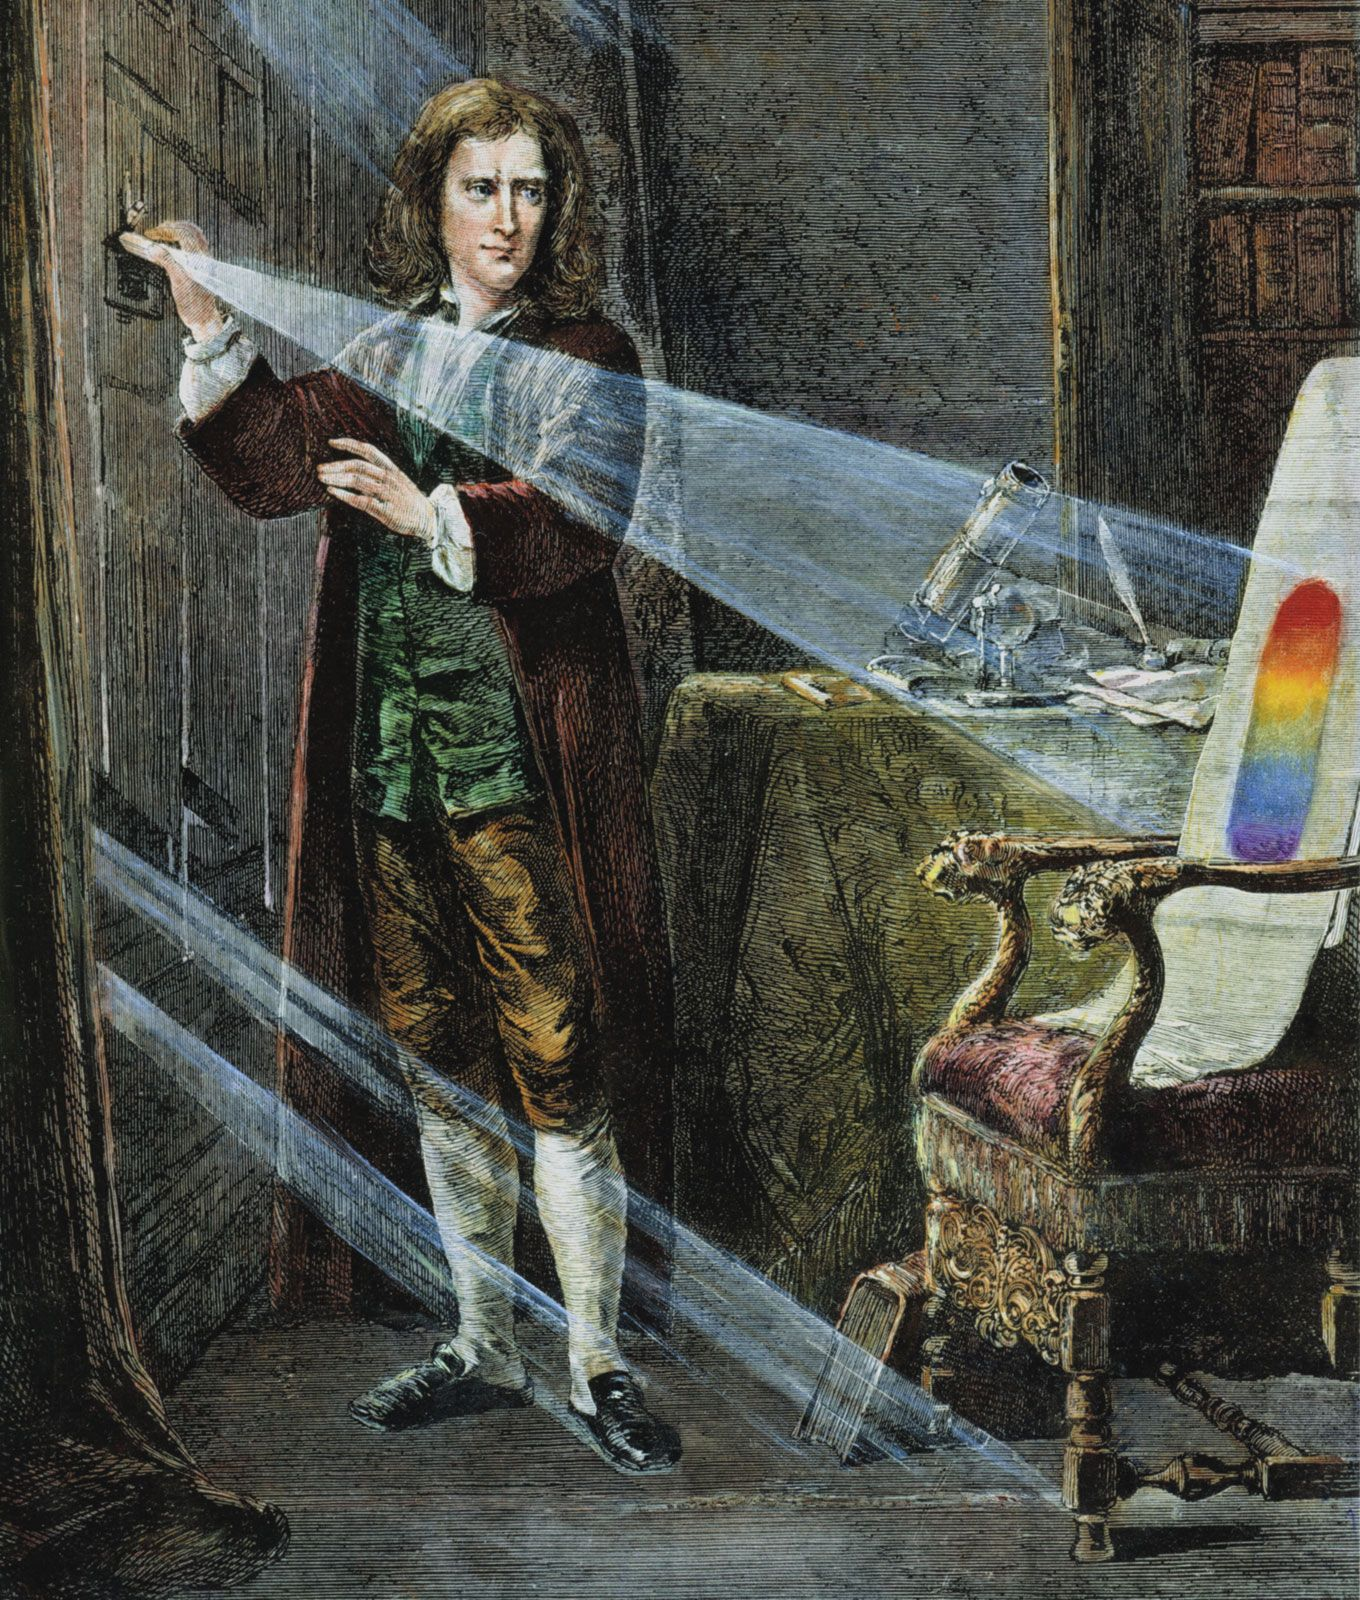 sir isaac newton 1642 1727 invented the reflecting telescope in sir isaac newton 1642 1727 invented the reflecting telescope in 1668 he was a physicist mathematician astronomer natural philosopher alchemi